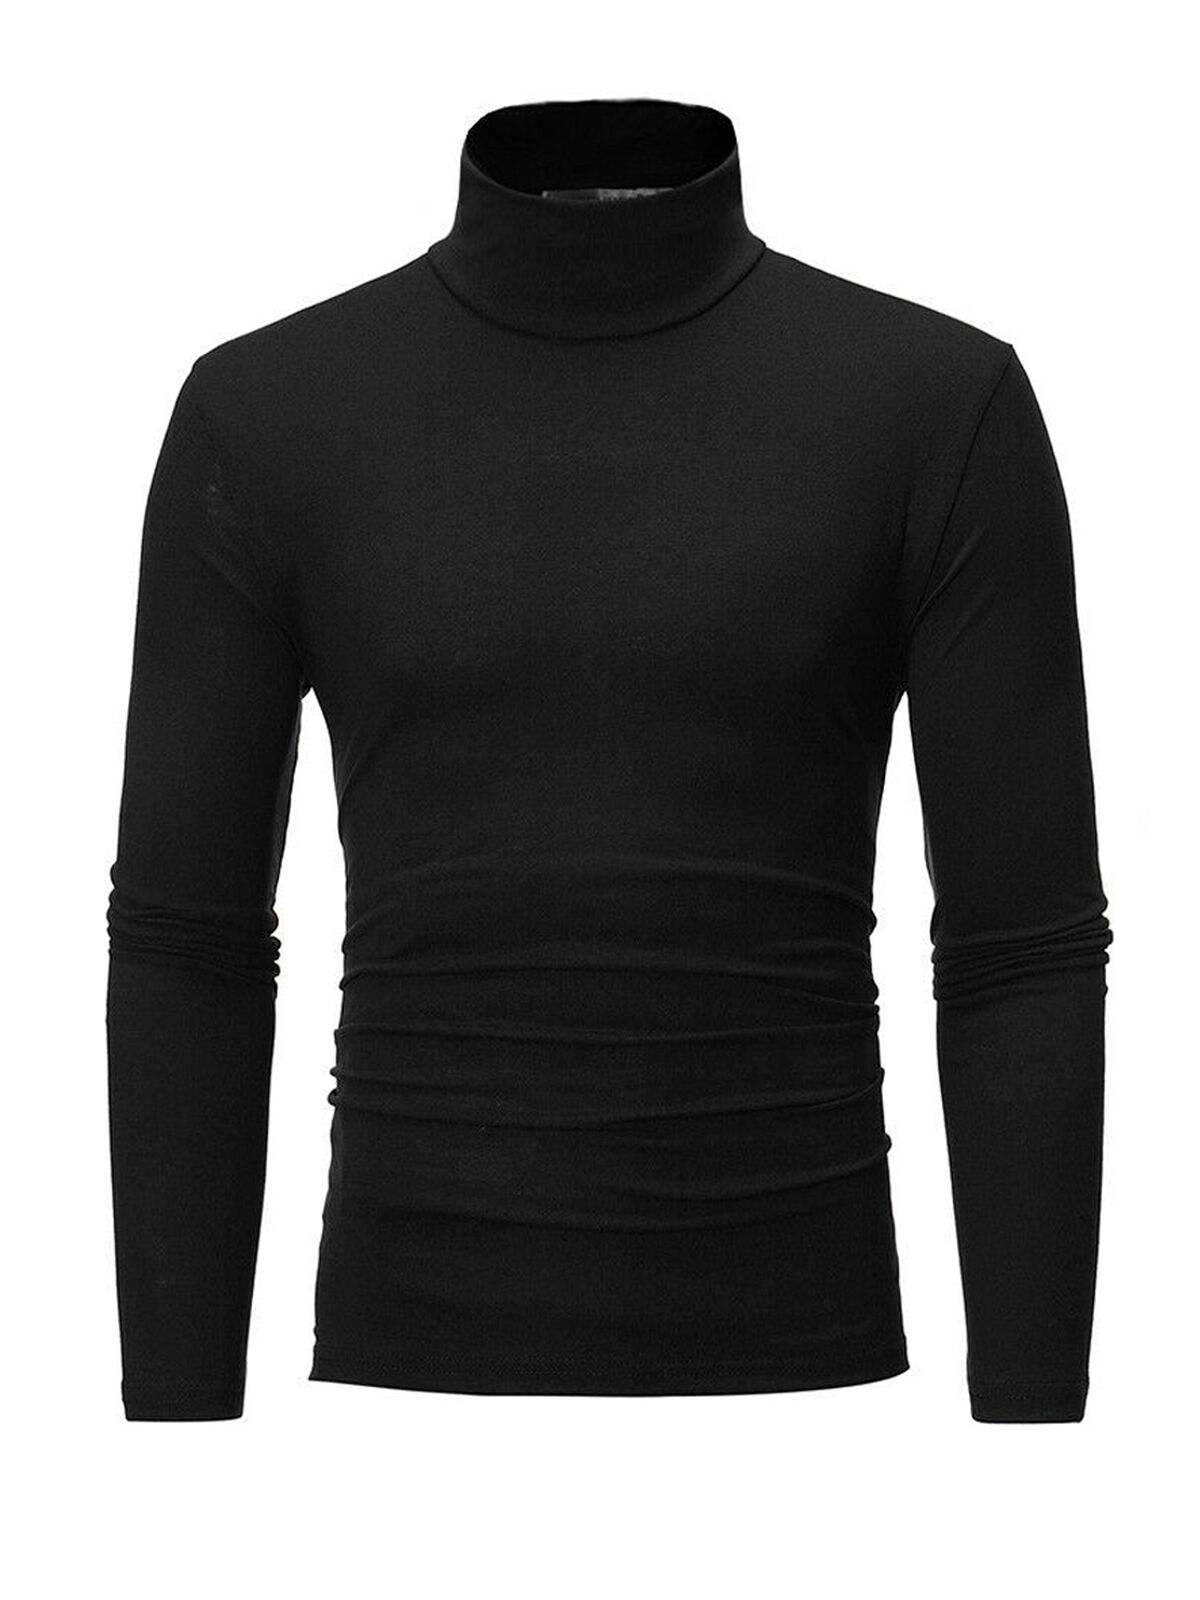 k mens thermal cotton turtle polo neck skivvy turtleneck sweater stretch shirts